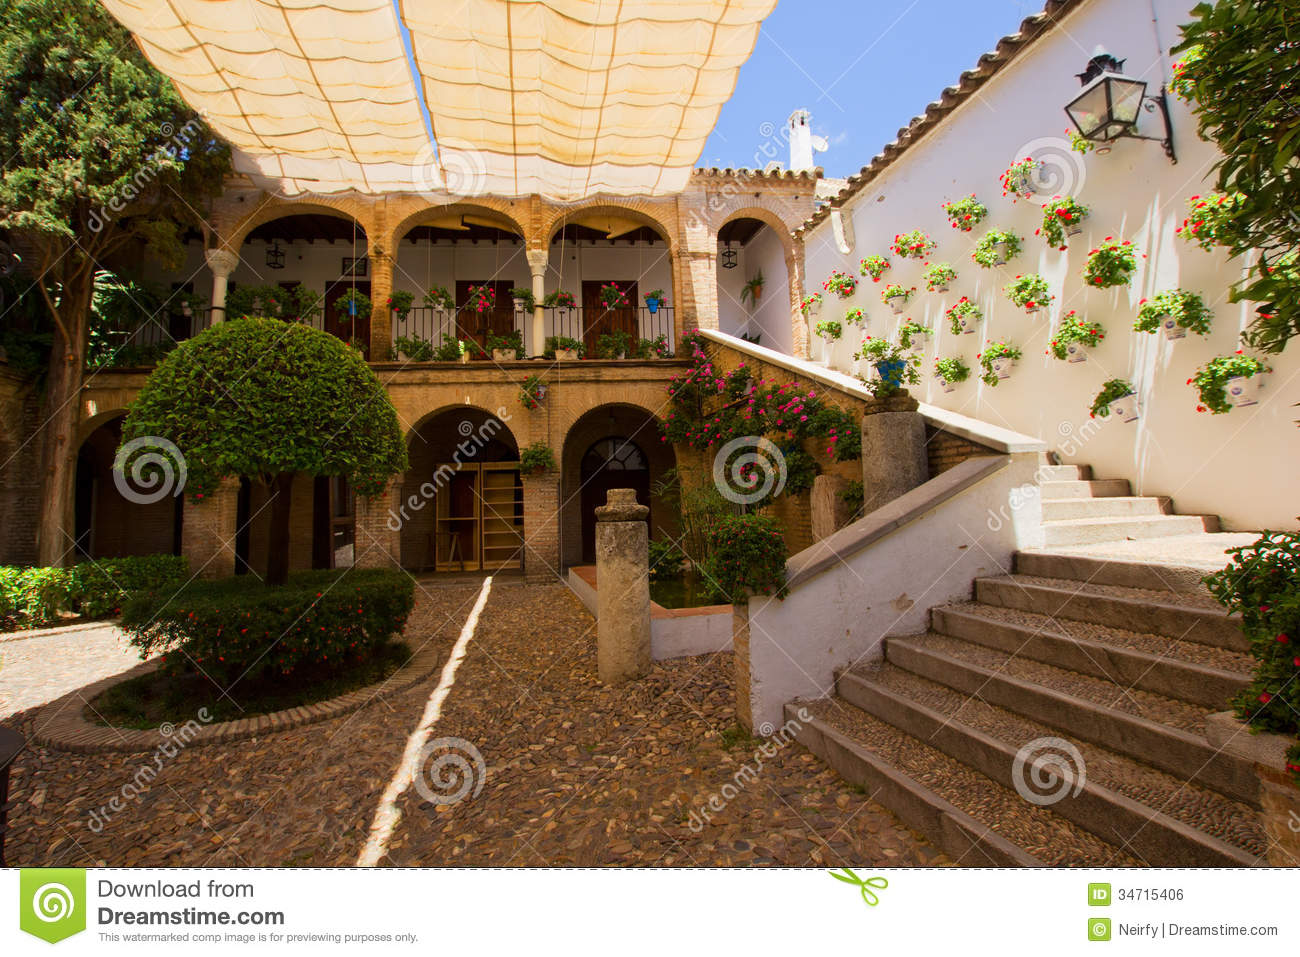 Courtyard Of A Typical House In Cordoba Stock Photo